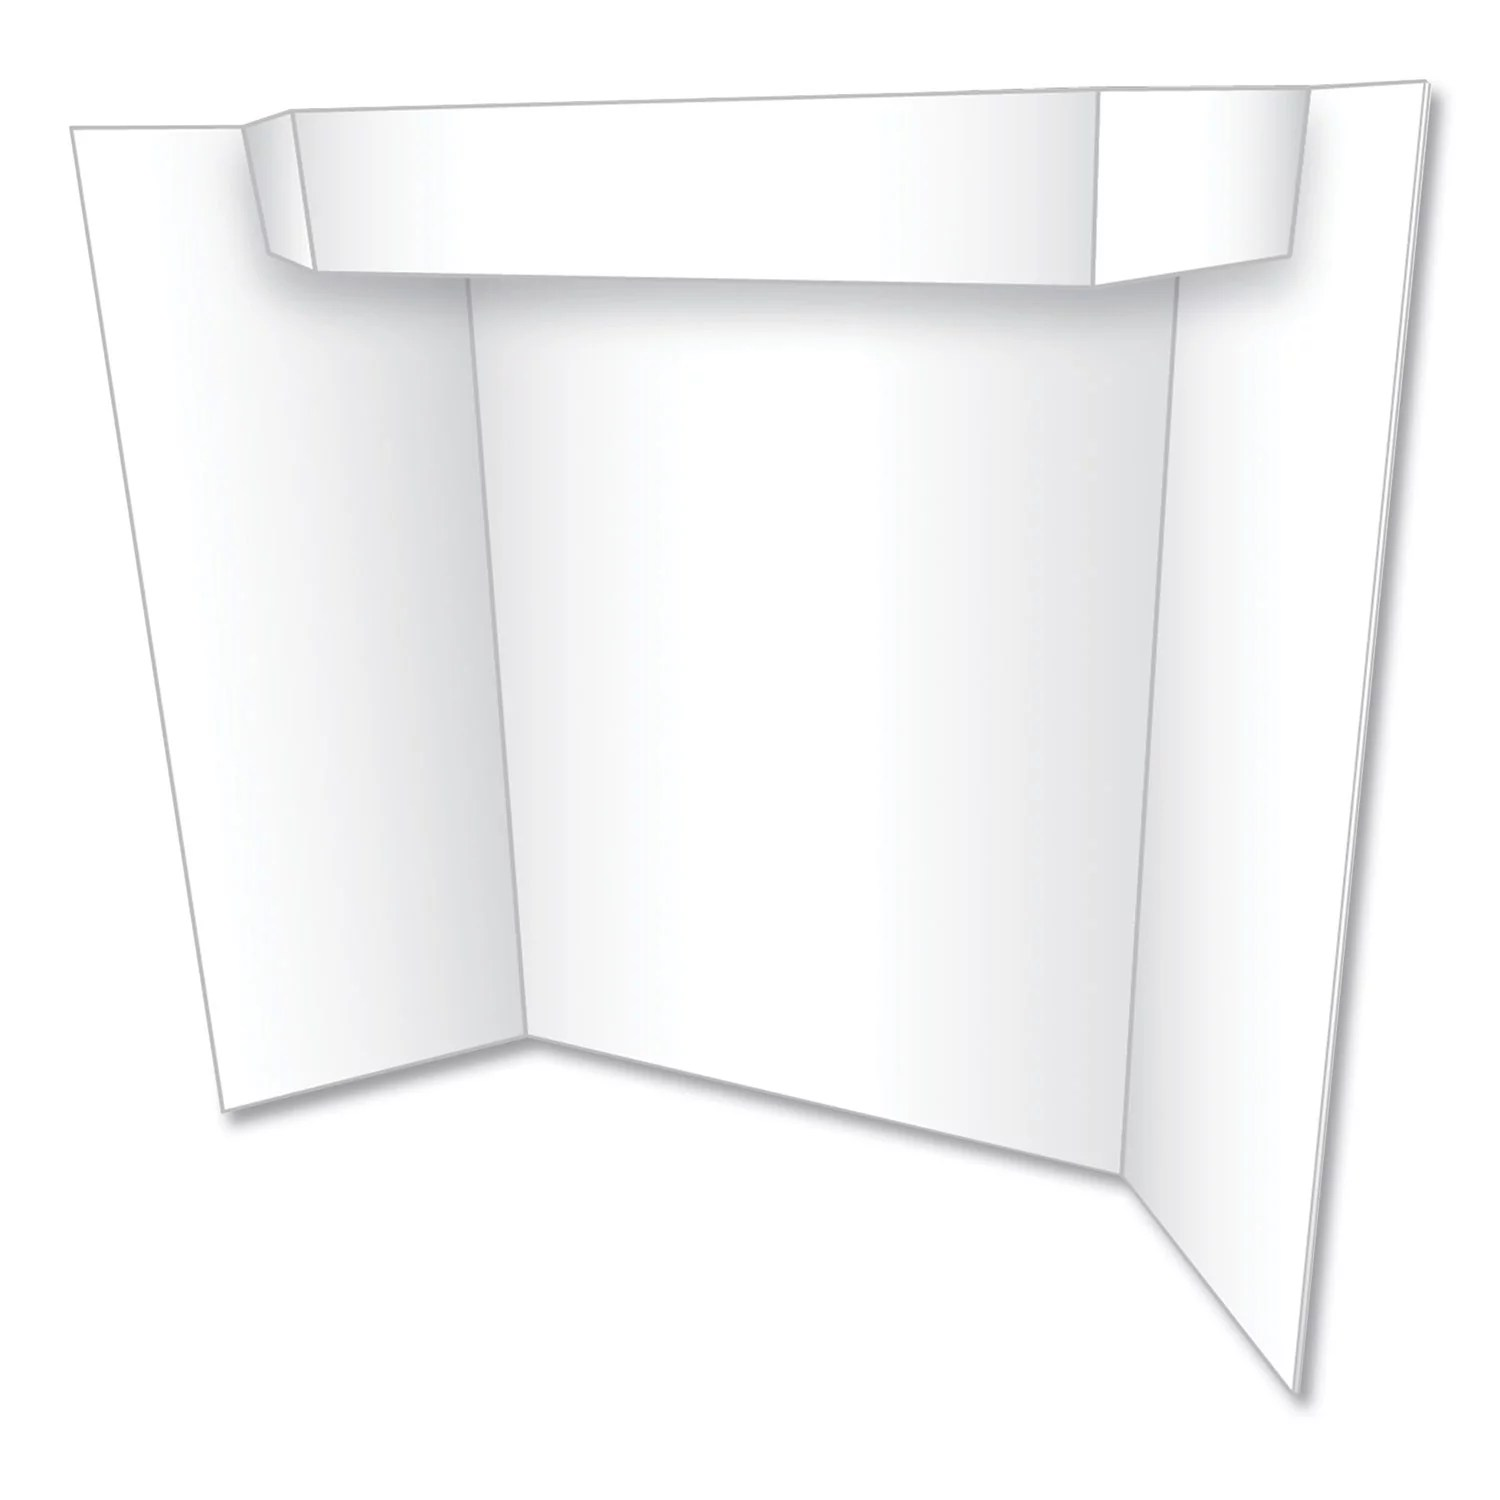 geographics too cool tri fold poster board 24 x 36 white